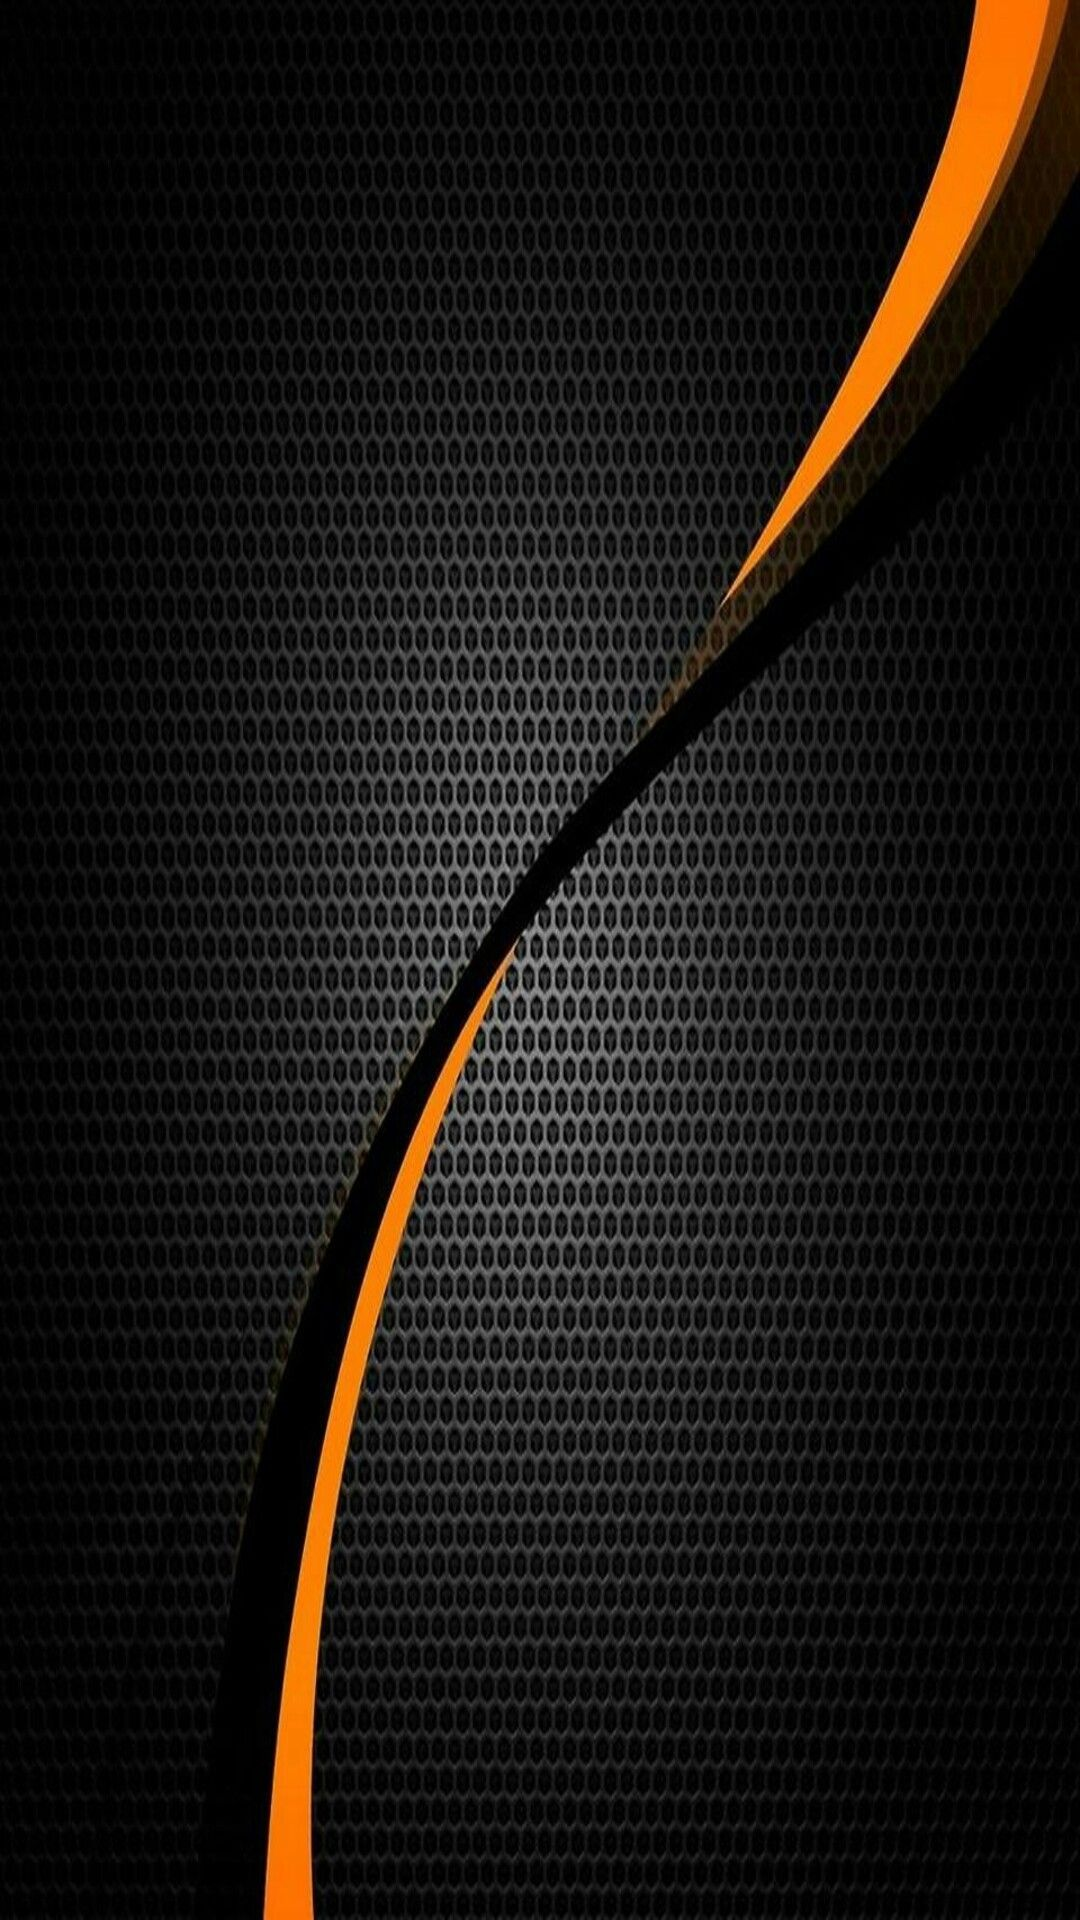 Cool Black Orange Iphone Background In 2020 Carbon Fiber Wallpaper Hd Wallpaper Android Android Wallpaper Red